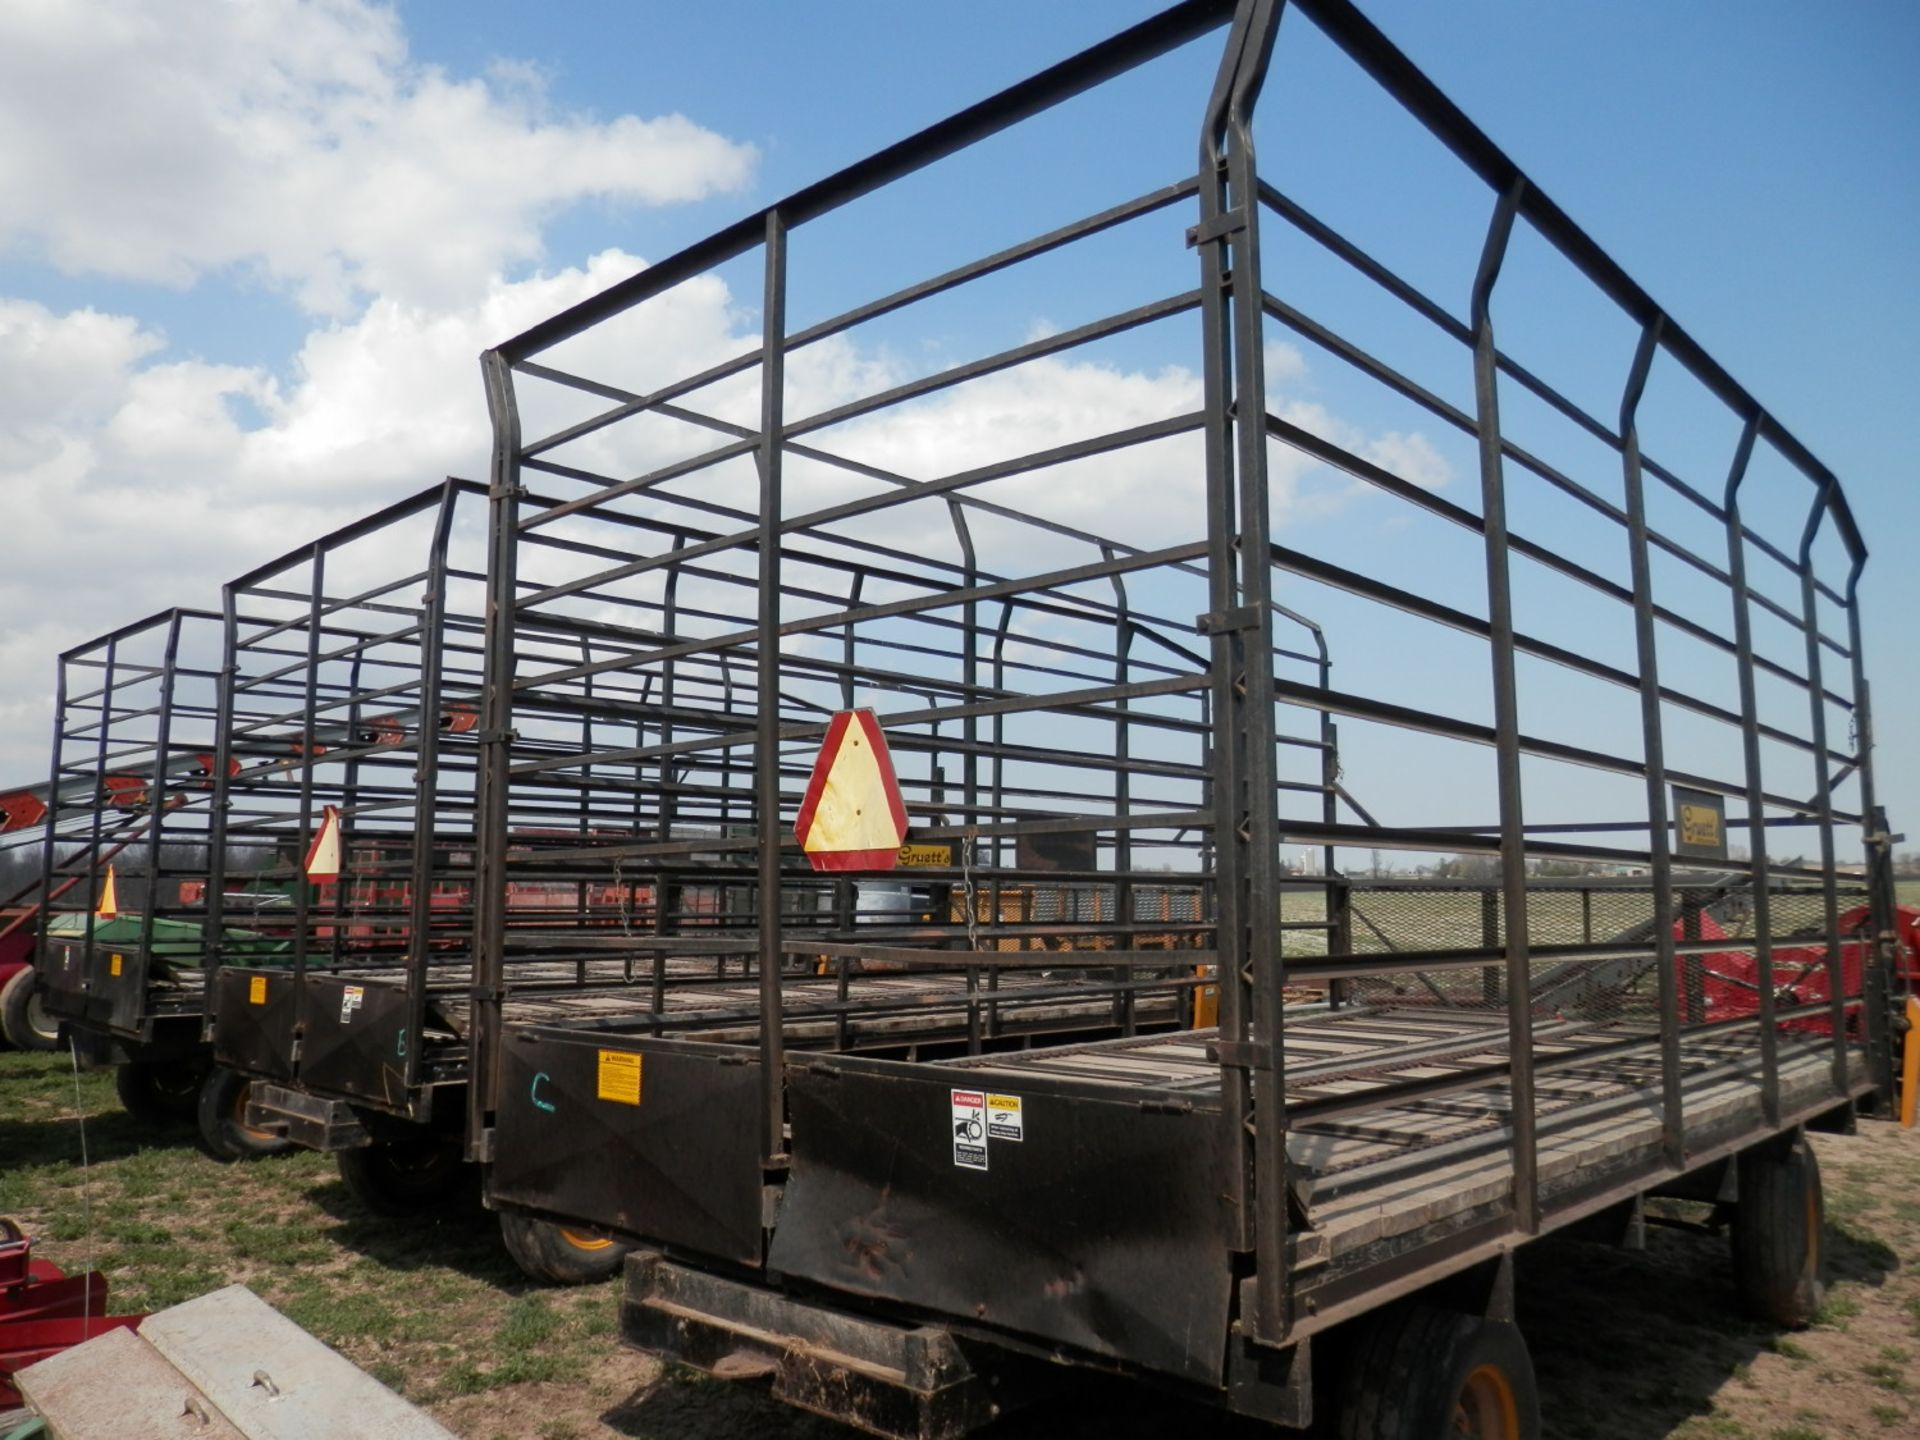 GRUETT 9X18 STEEL SIDE KICK BALE WAGONS, 3 AVAILABLE, SELLING CHOICE - Image 3 of 7